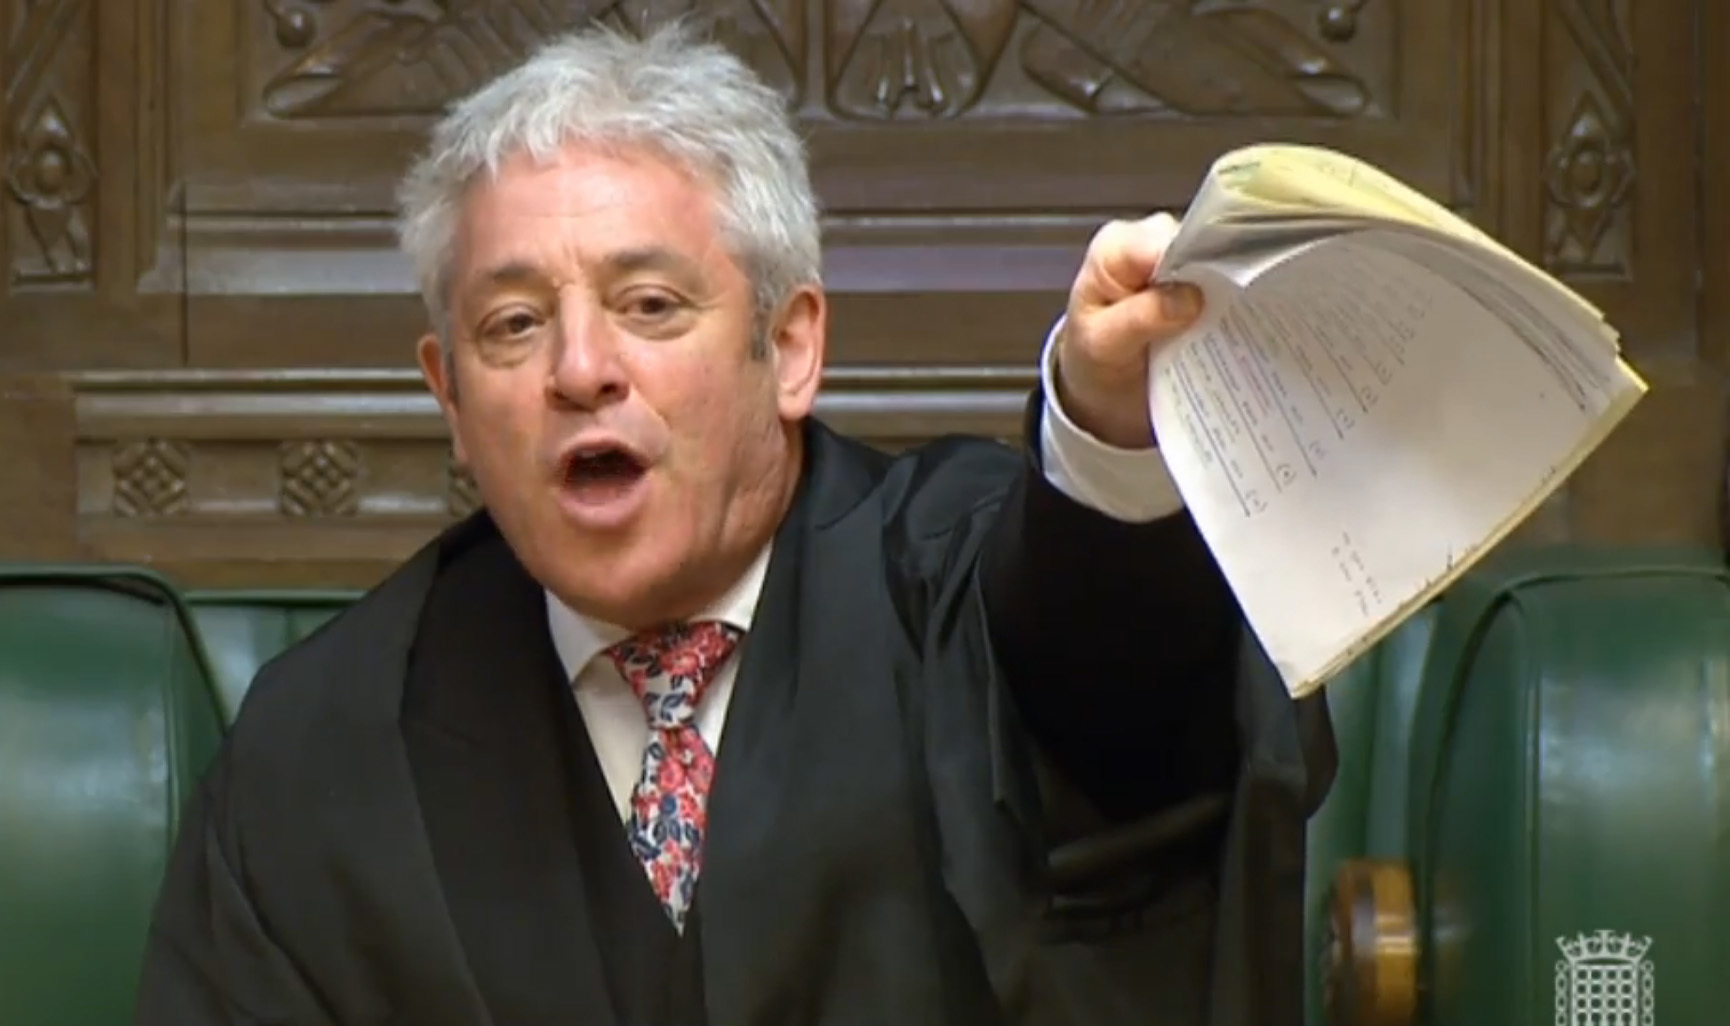 Speaker John Bercow was reacting to SNP protests